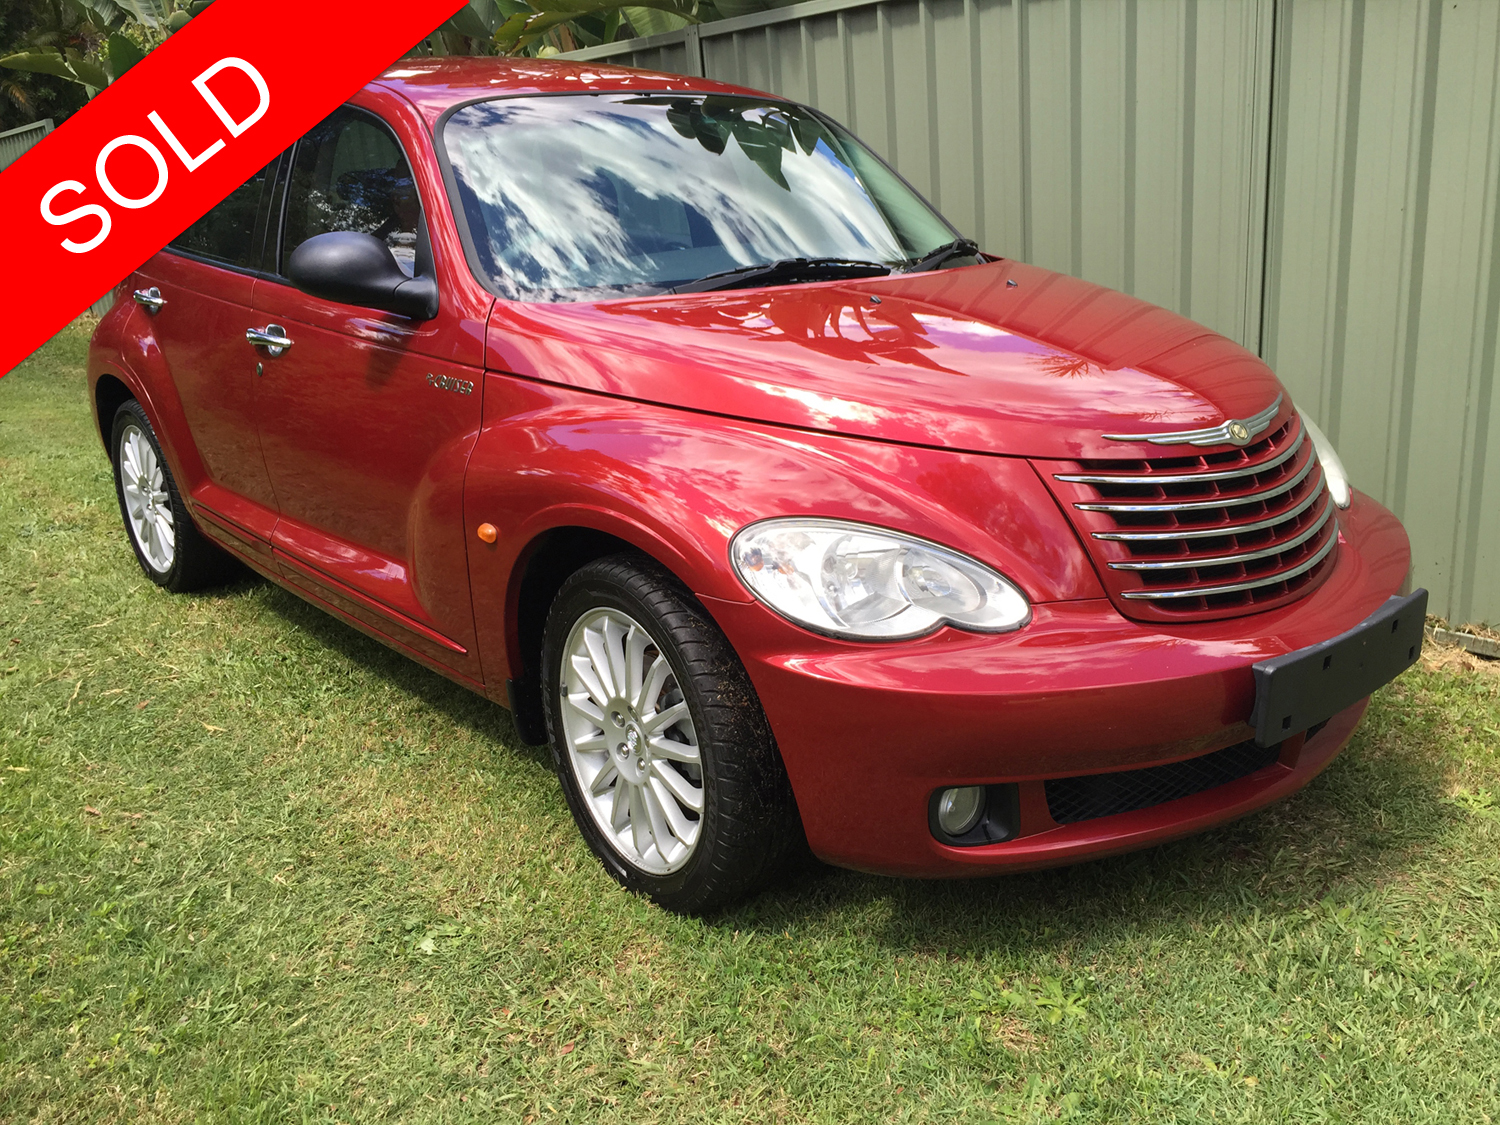 2005 chrysler pt cruiser red used vehicle sales. Black Bedroom Furniture Sets. Home Design Ideas